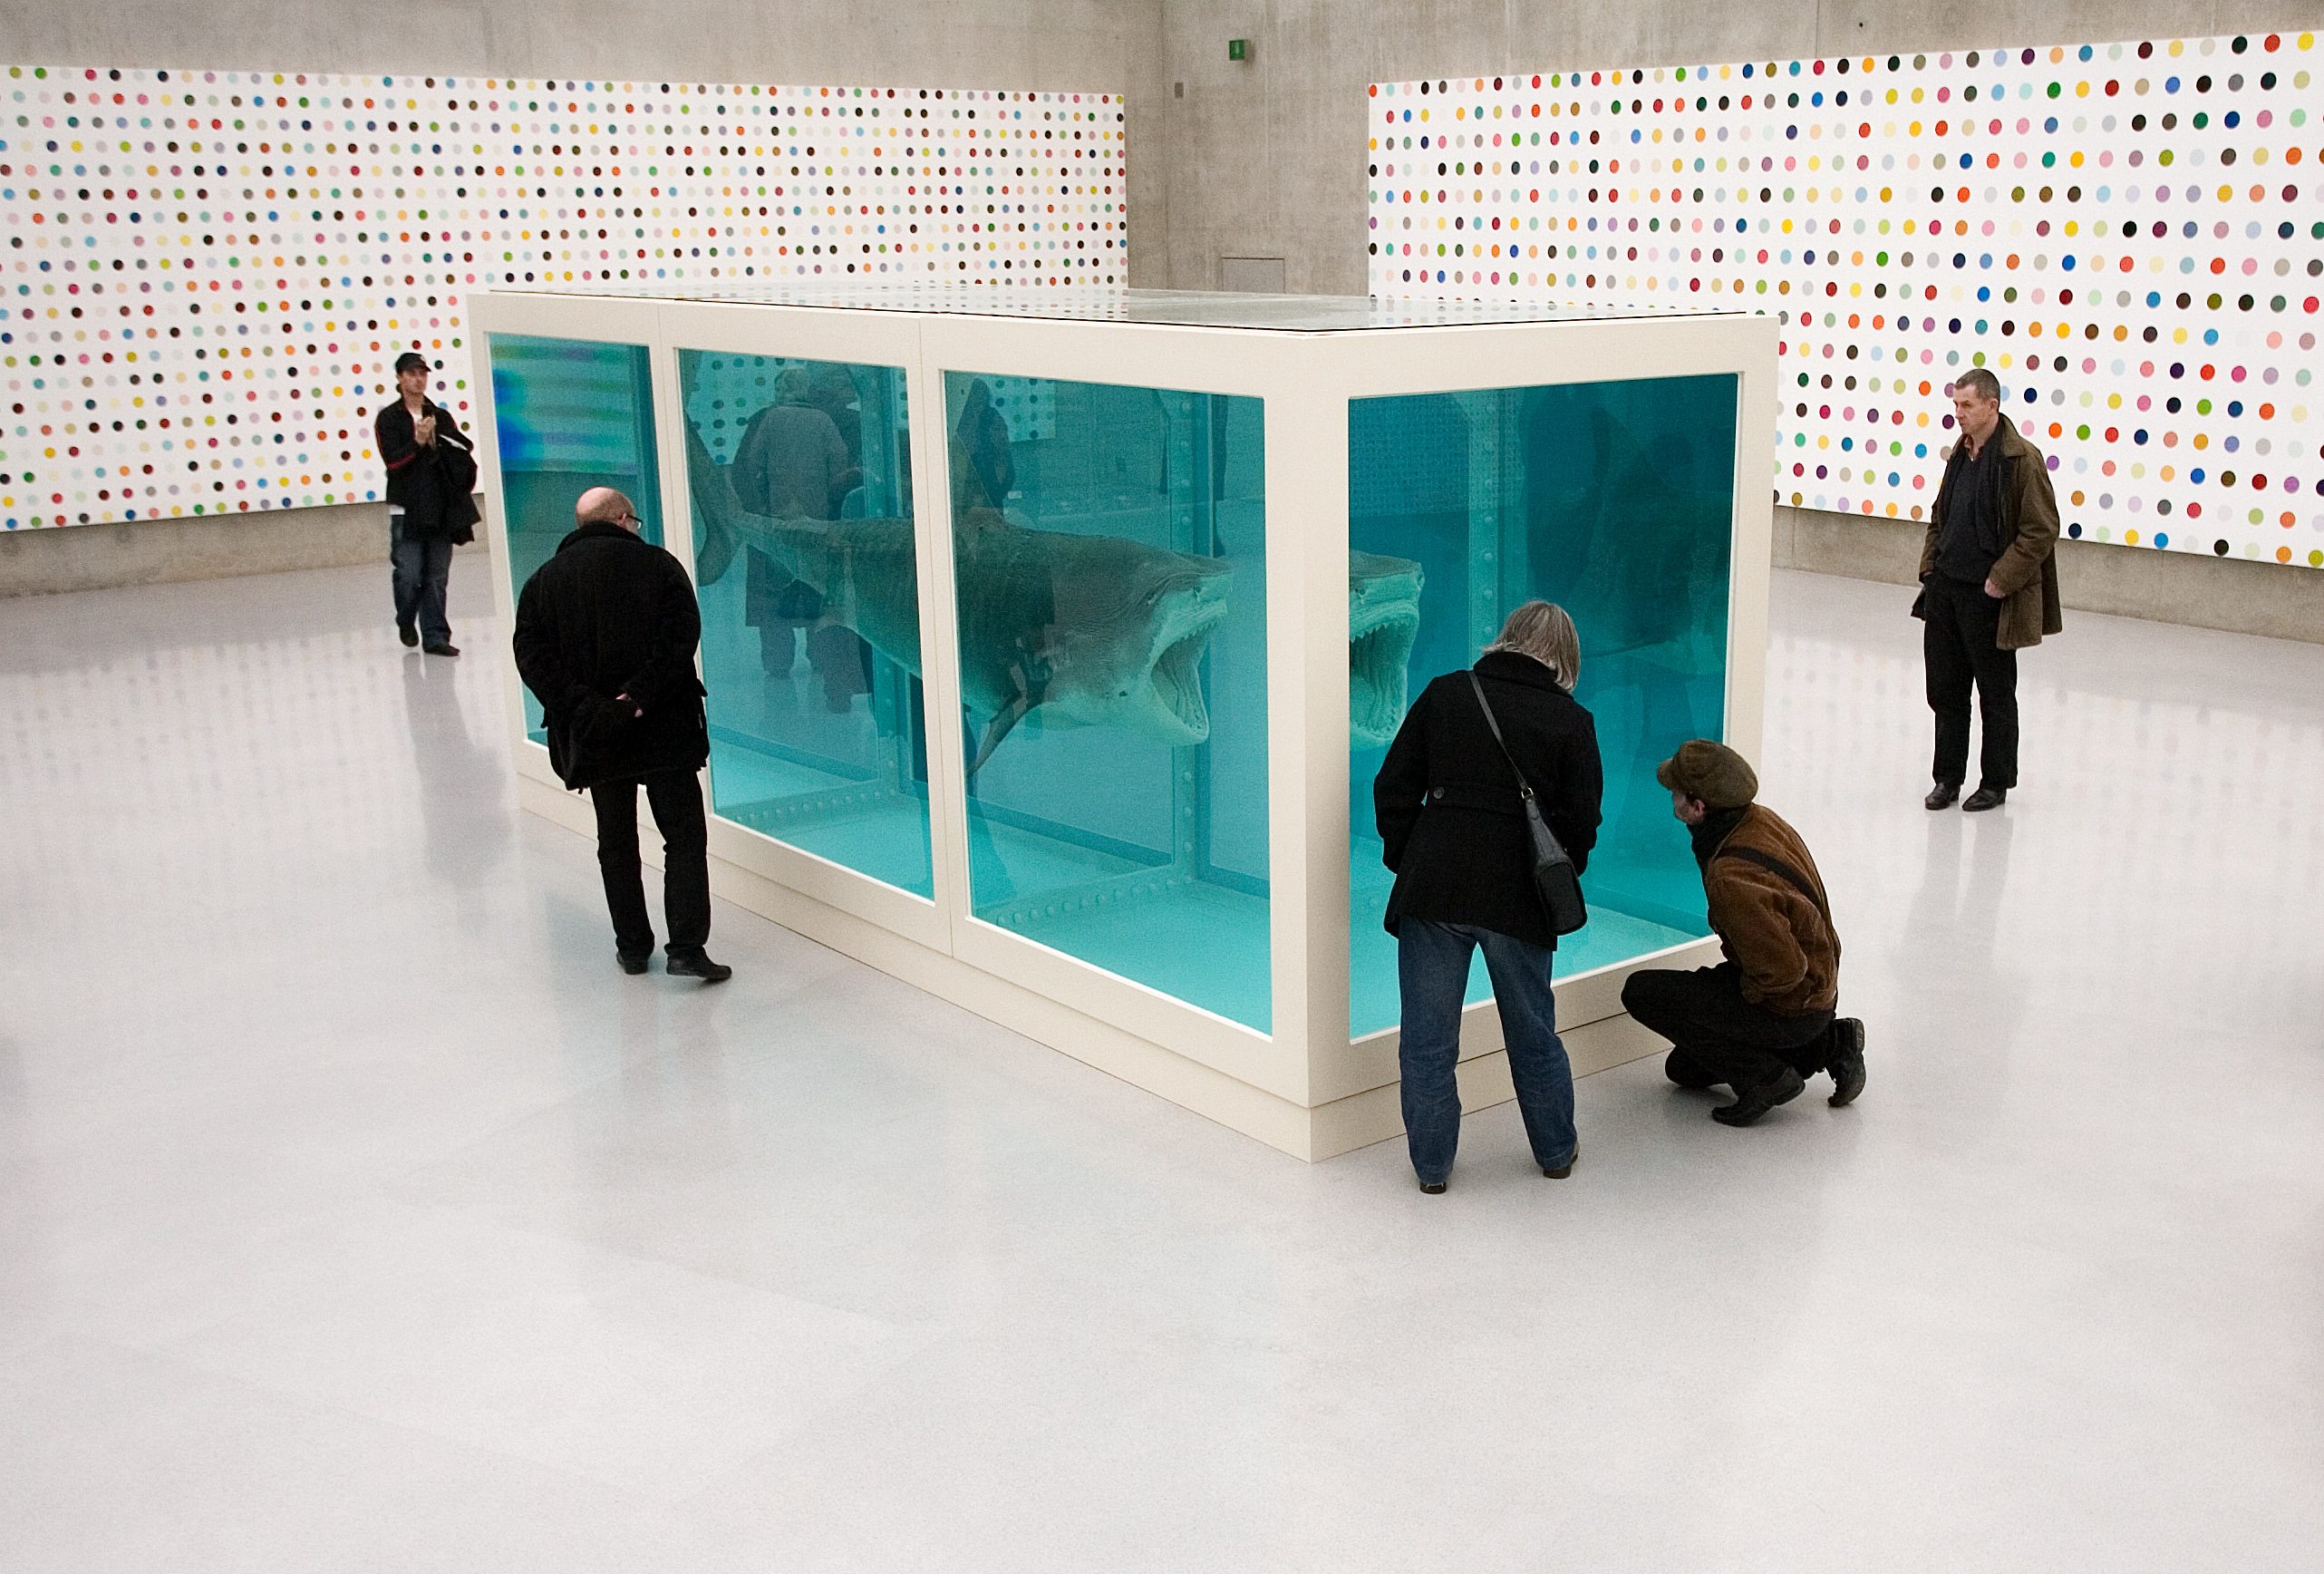 Visitors contemplate a work by British artist Hirst at the Kunsthaus in Bregenz